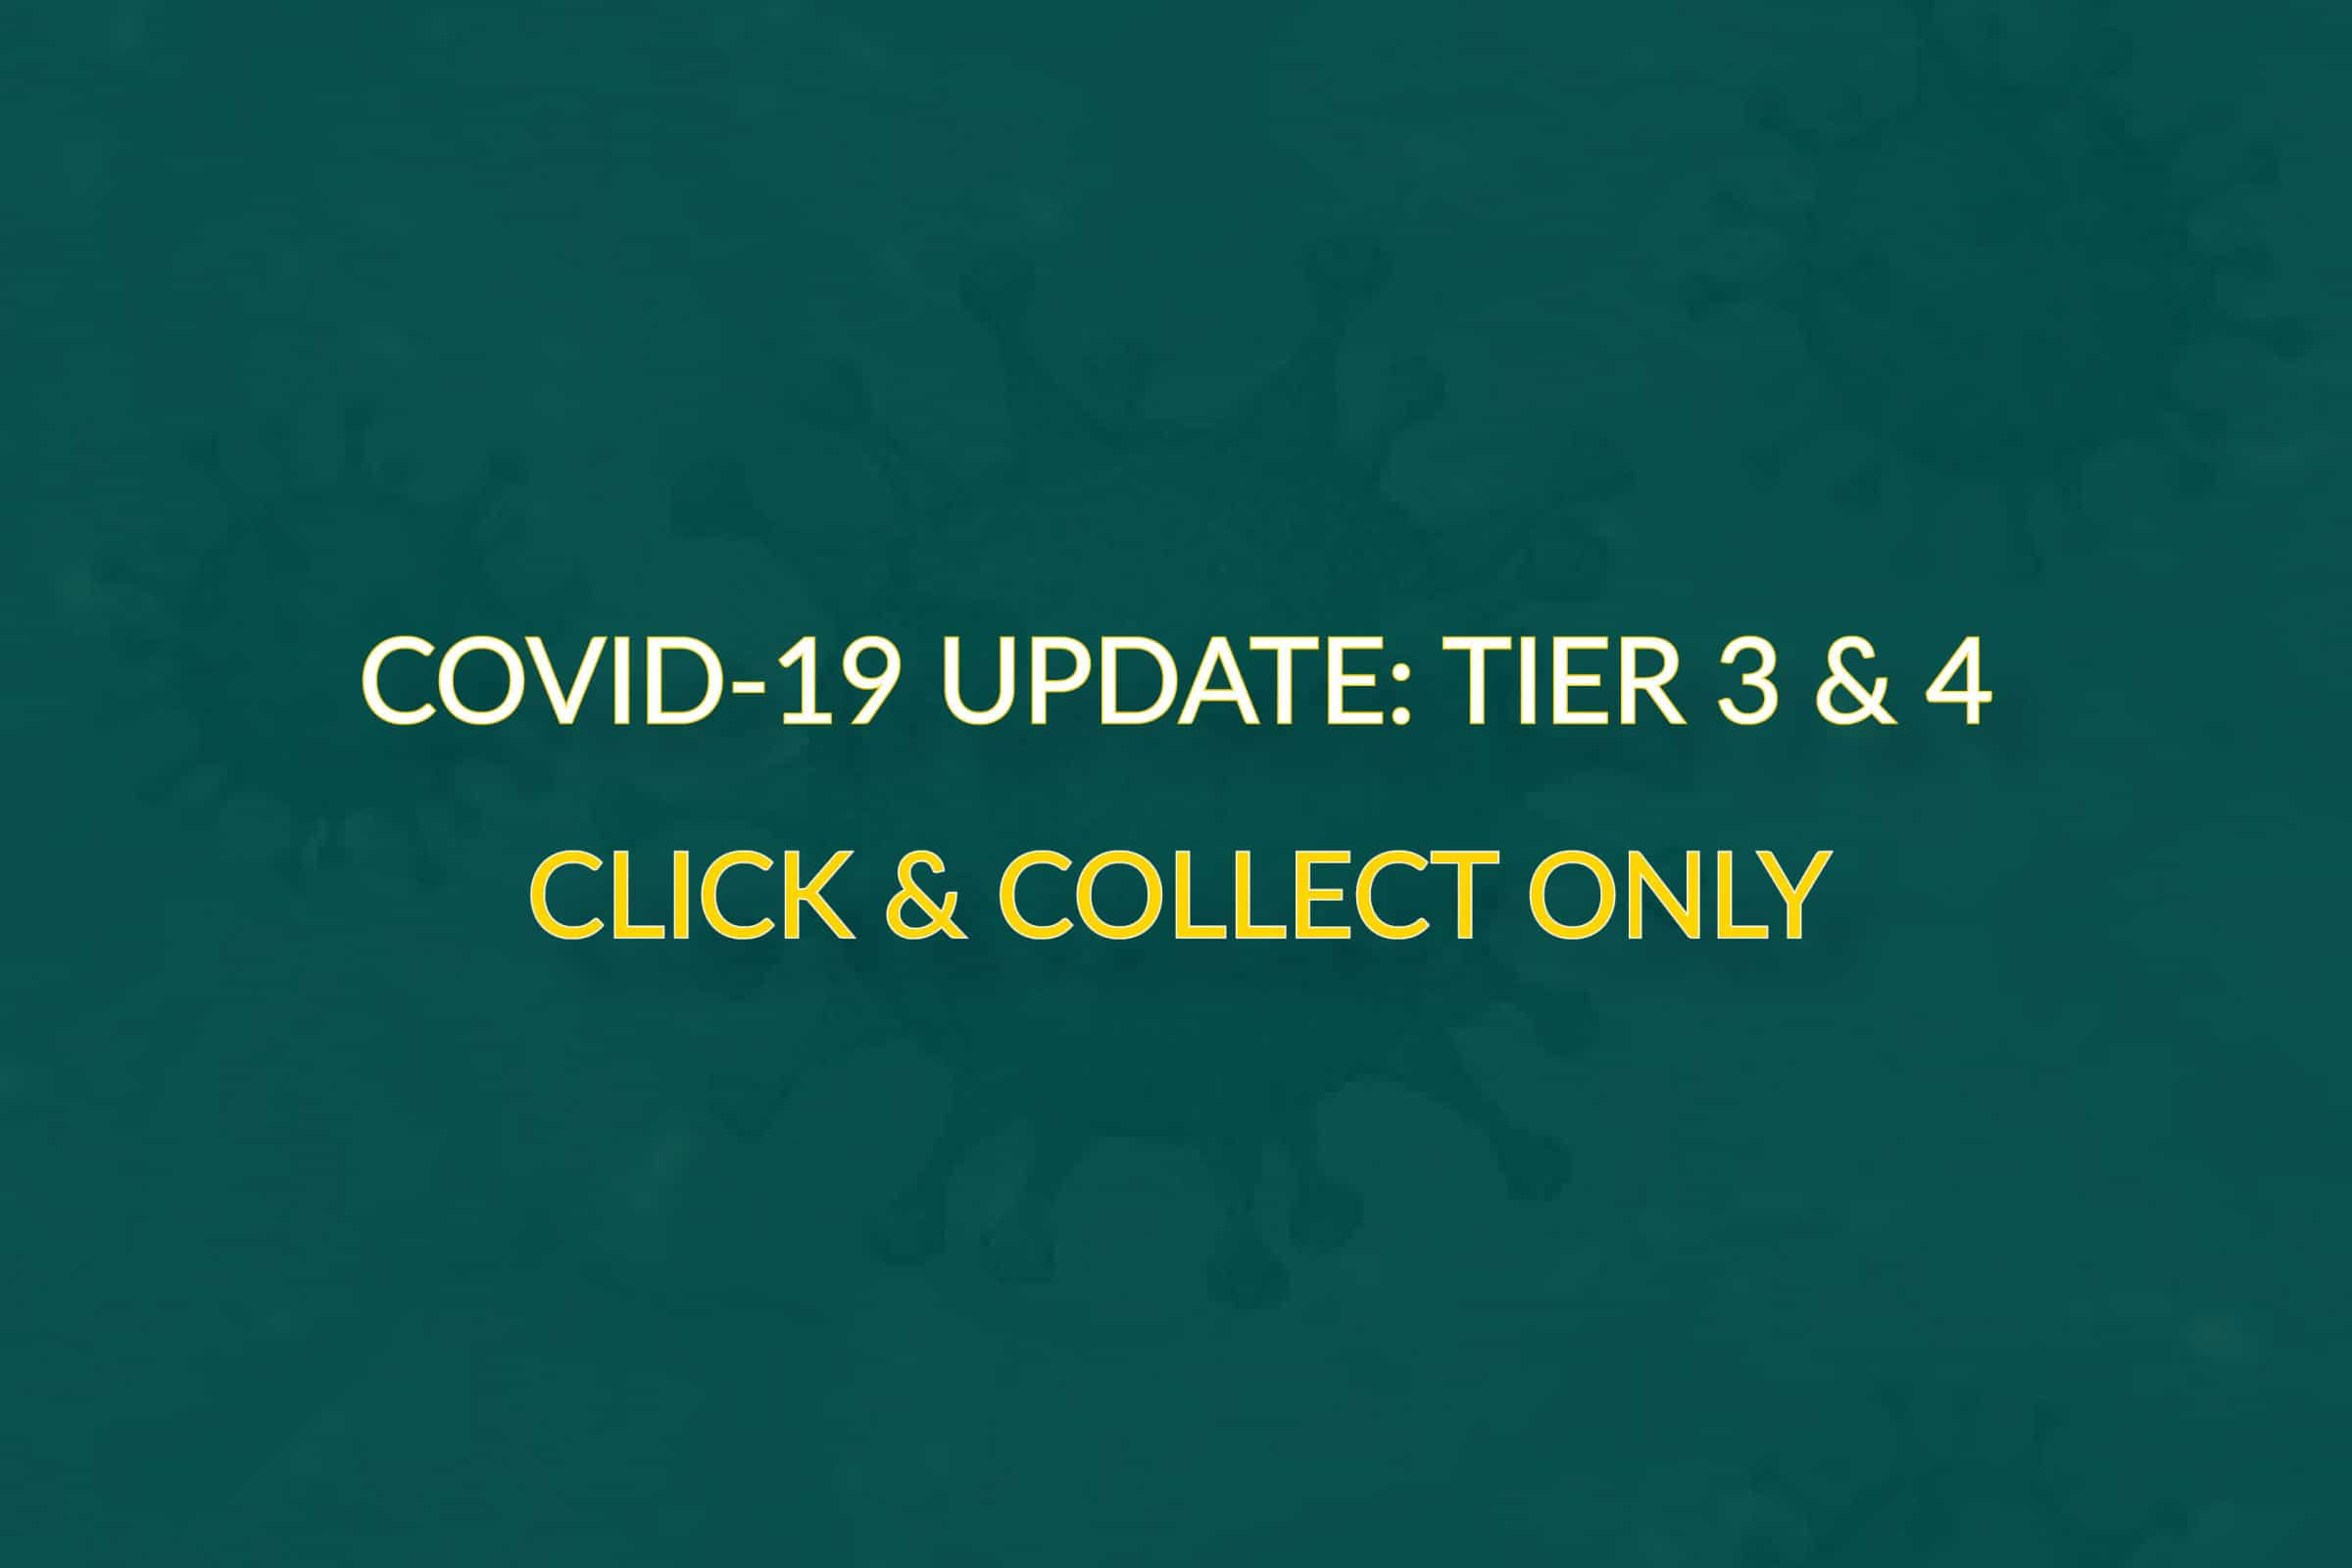 COVID UPDATE: New Tier Restrictions for Maulden, Cromer, Dunmow & Rayleigh